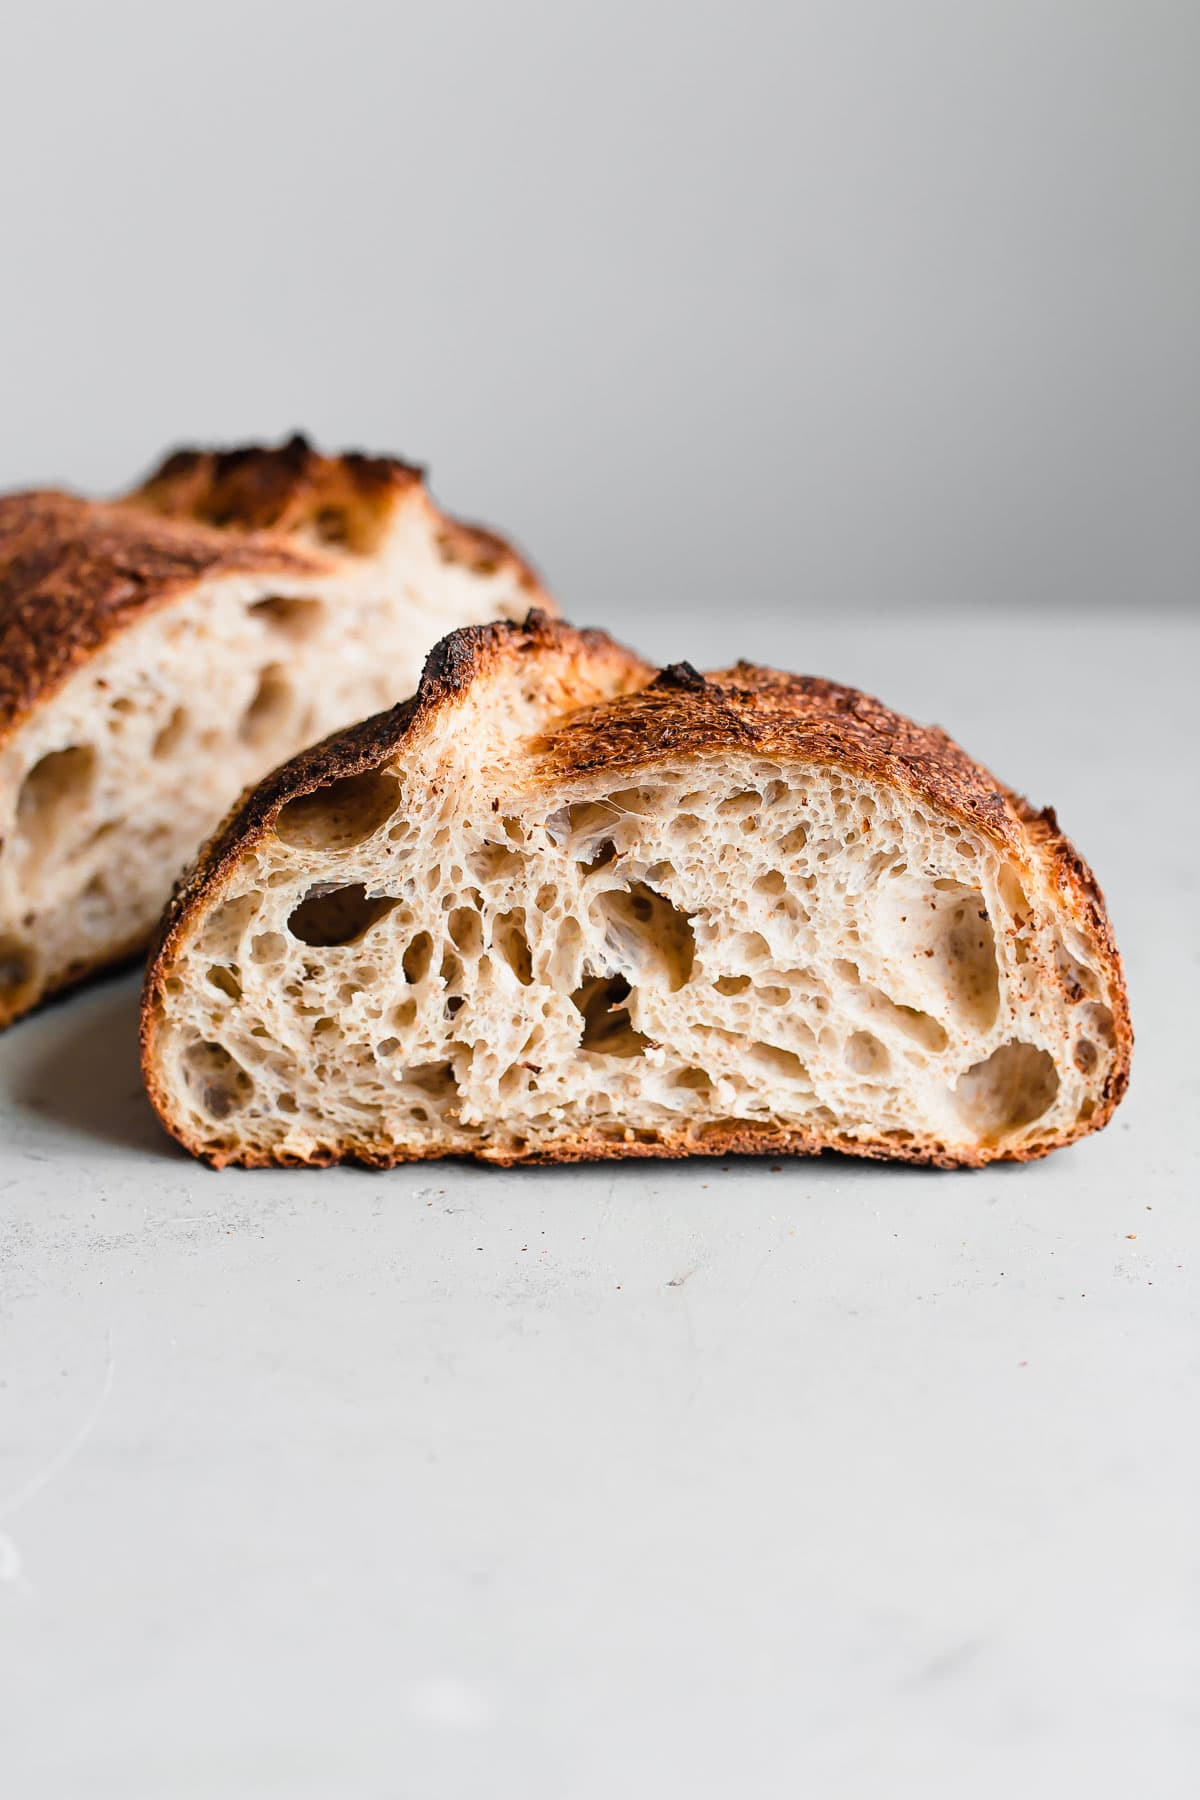 Artisan Sourdough Bread Recipe (Start-to-Finish Video) - A ...